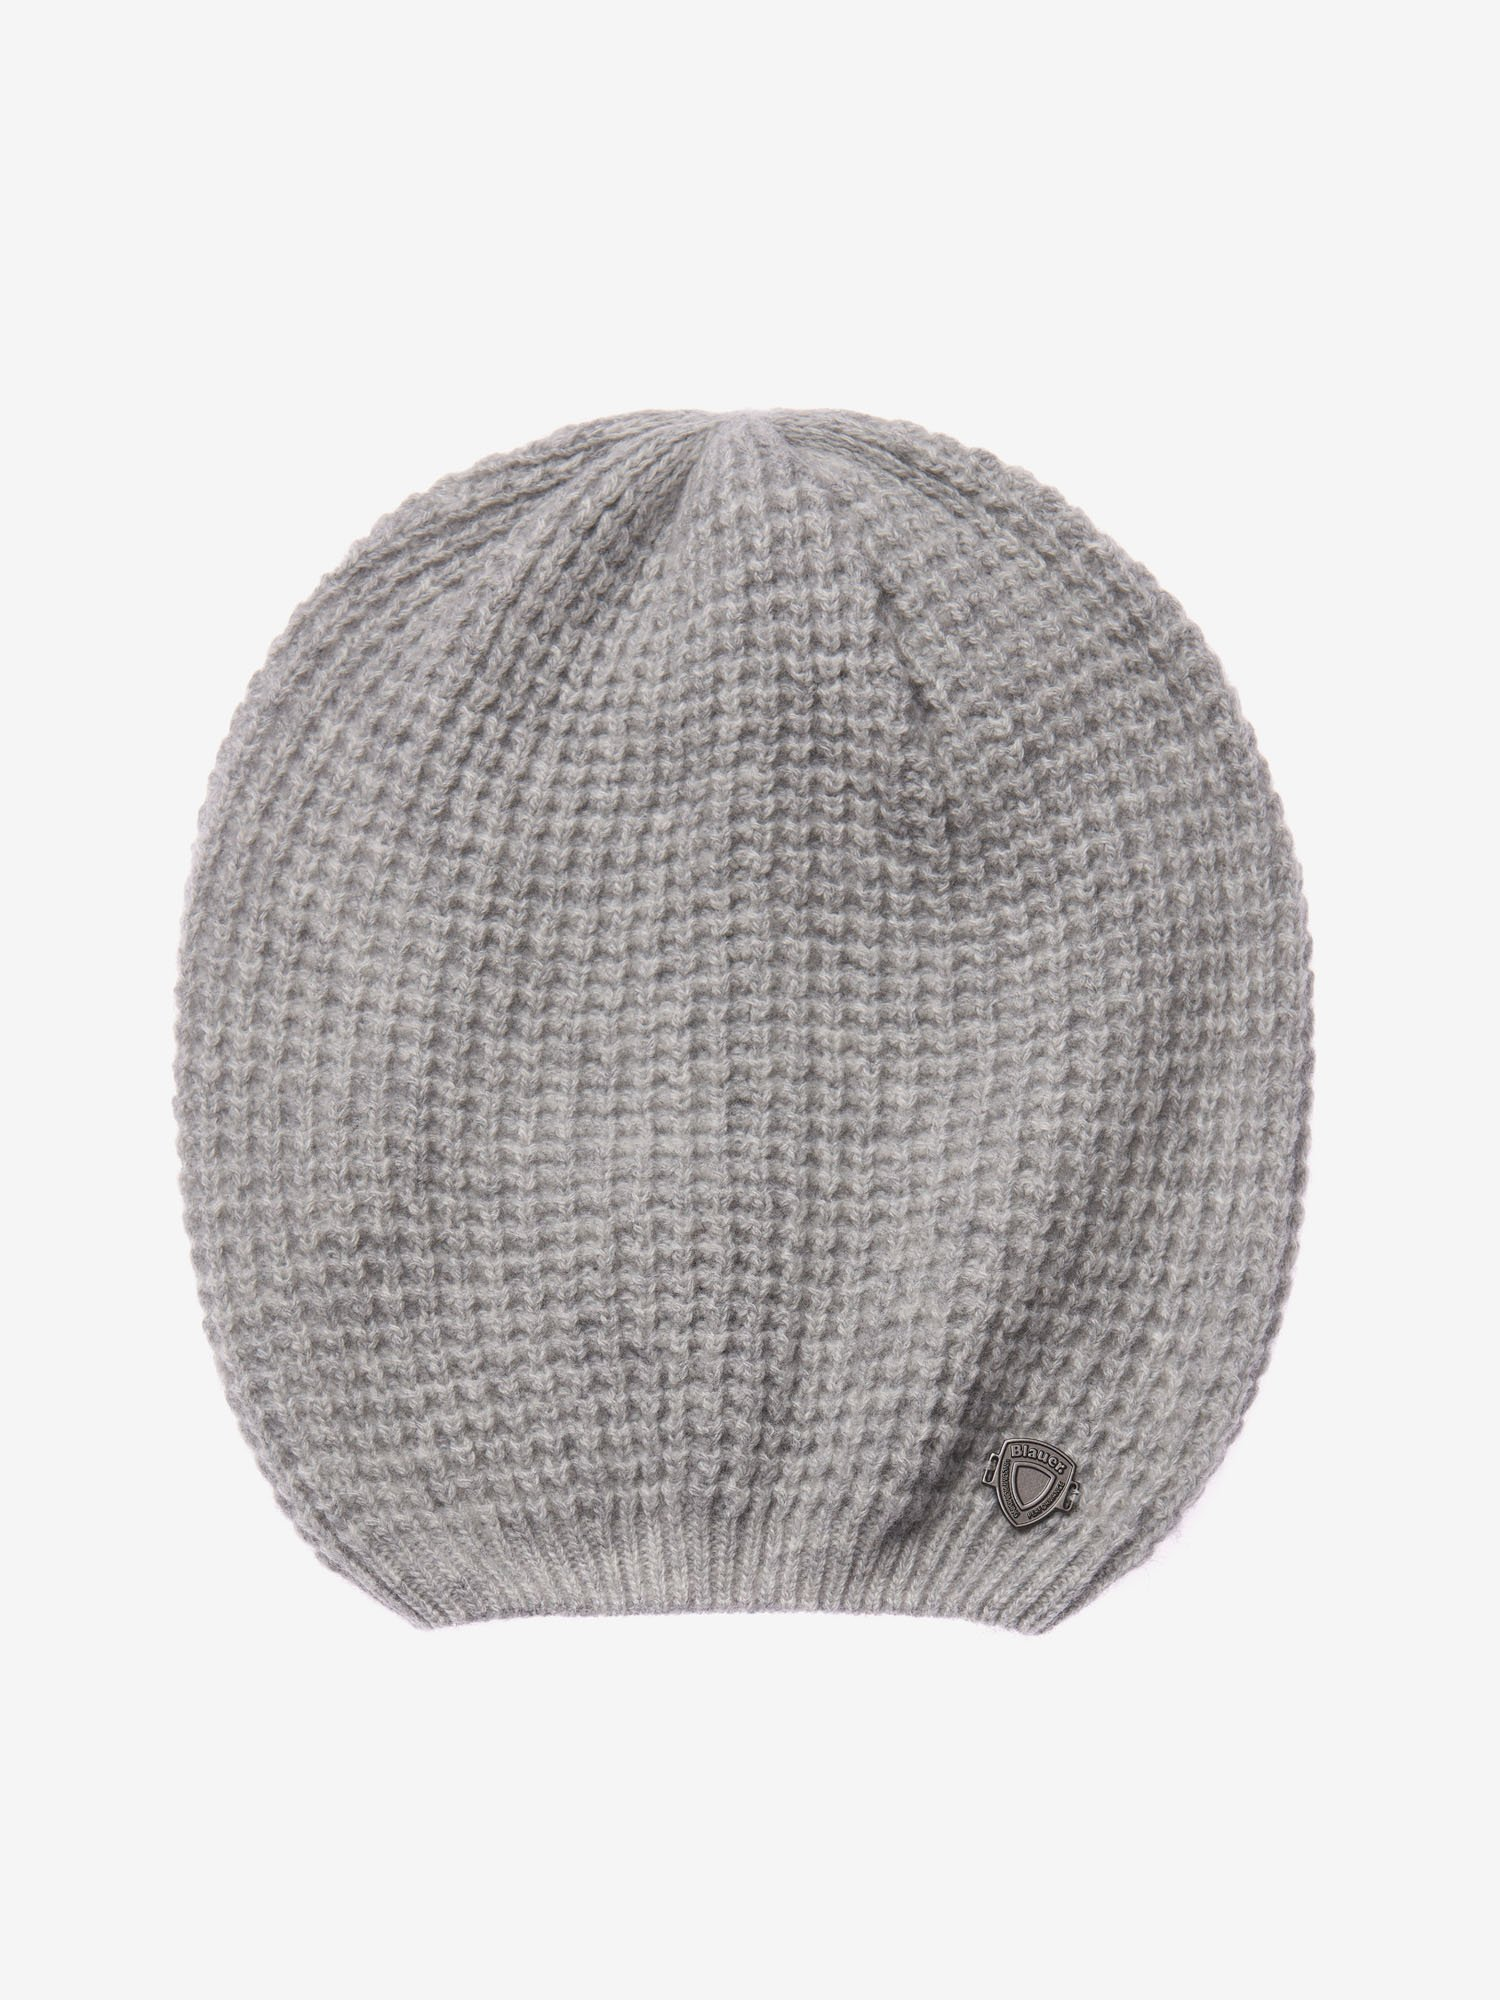 CROCHET KNIT STITCH BEANIE - Blauer